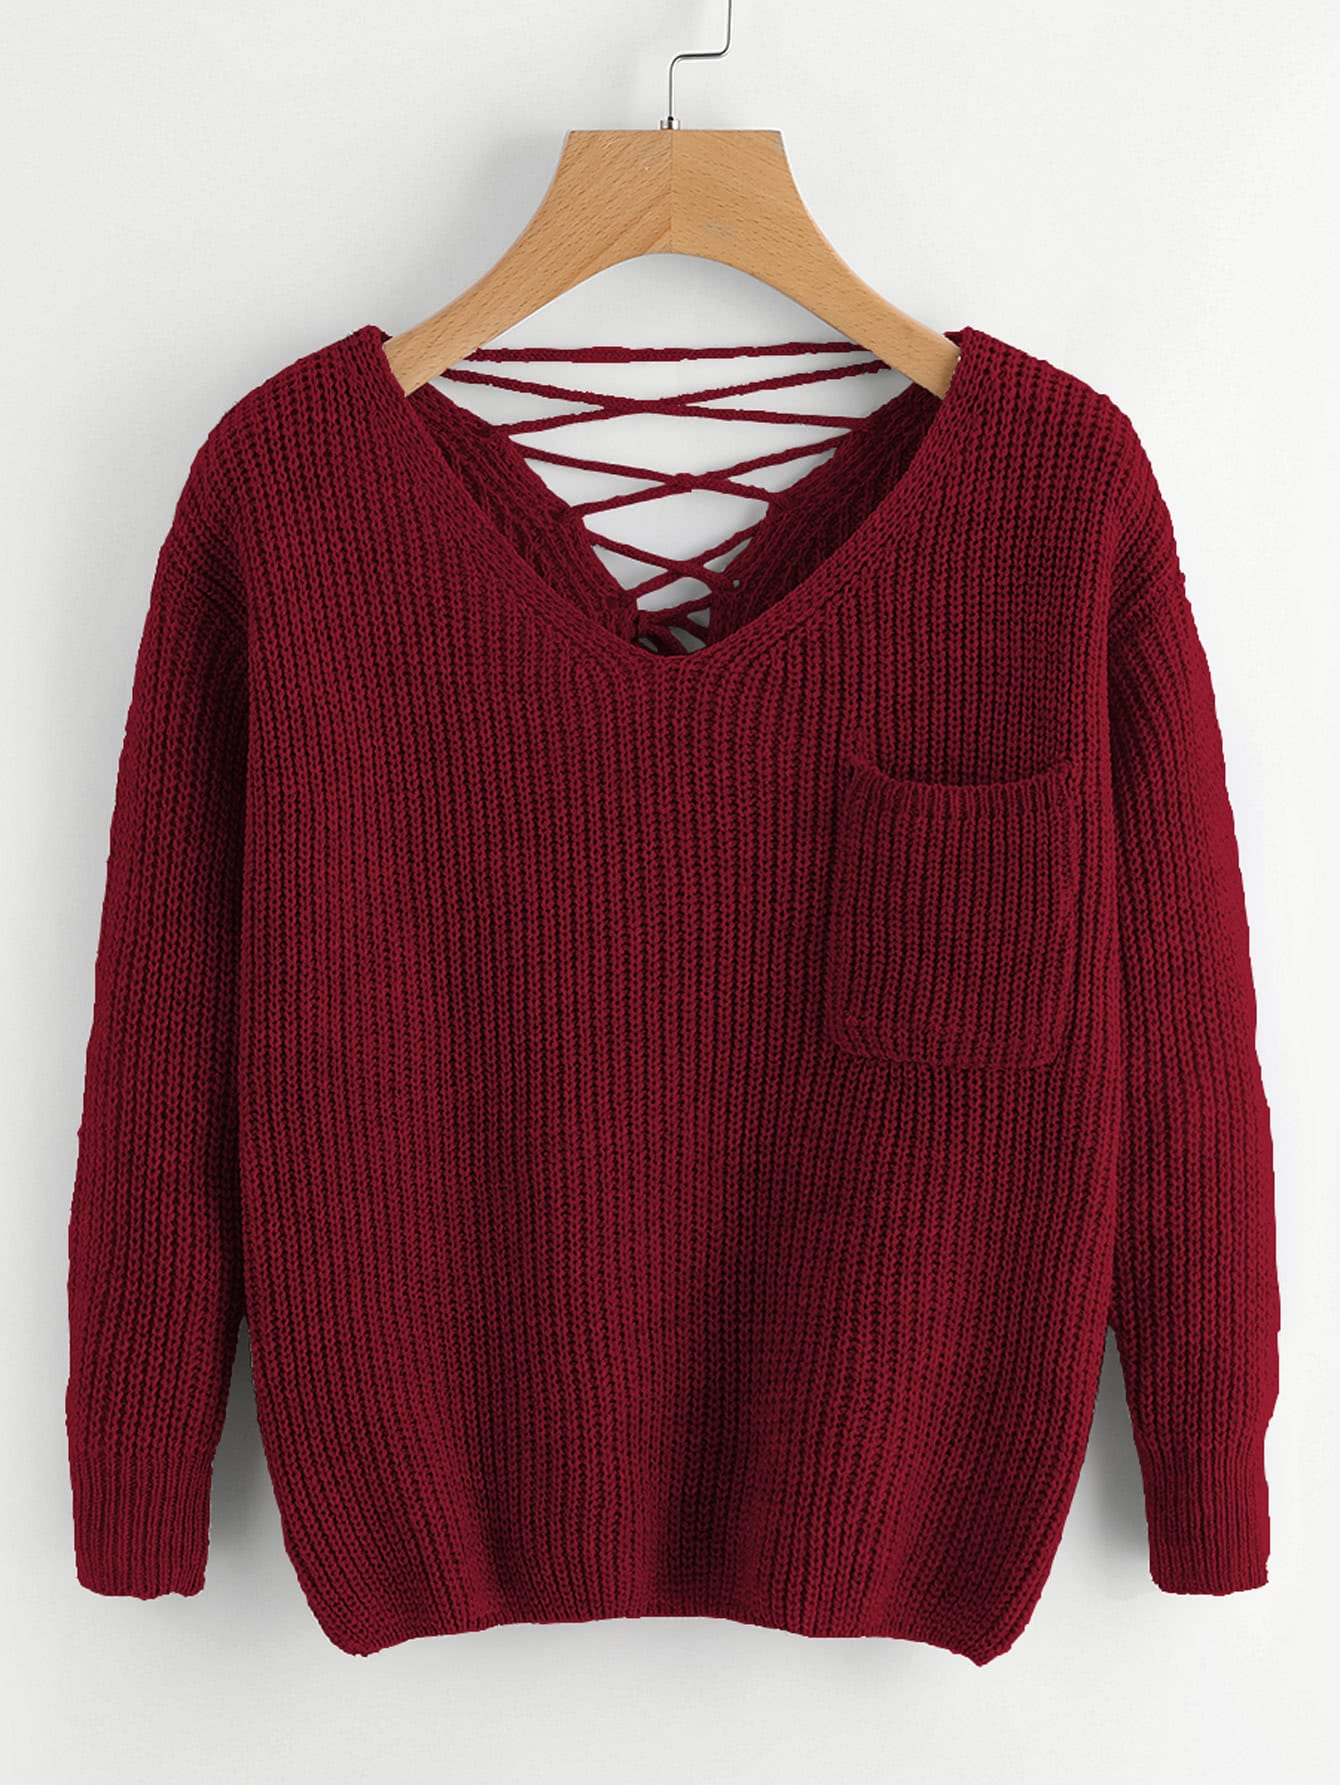 Double V Lace Up Back Chunky Knit Jumper lace up cable knit jumper